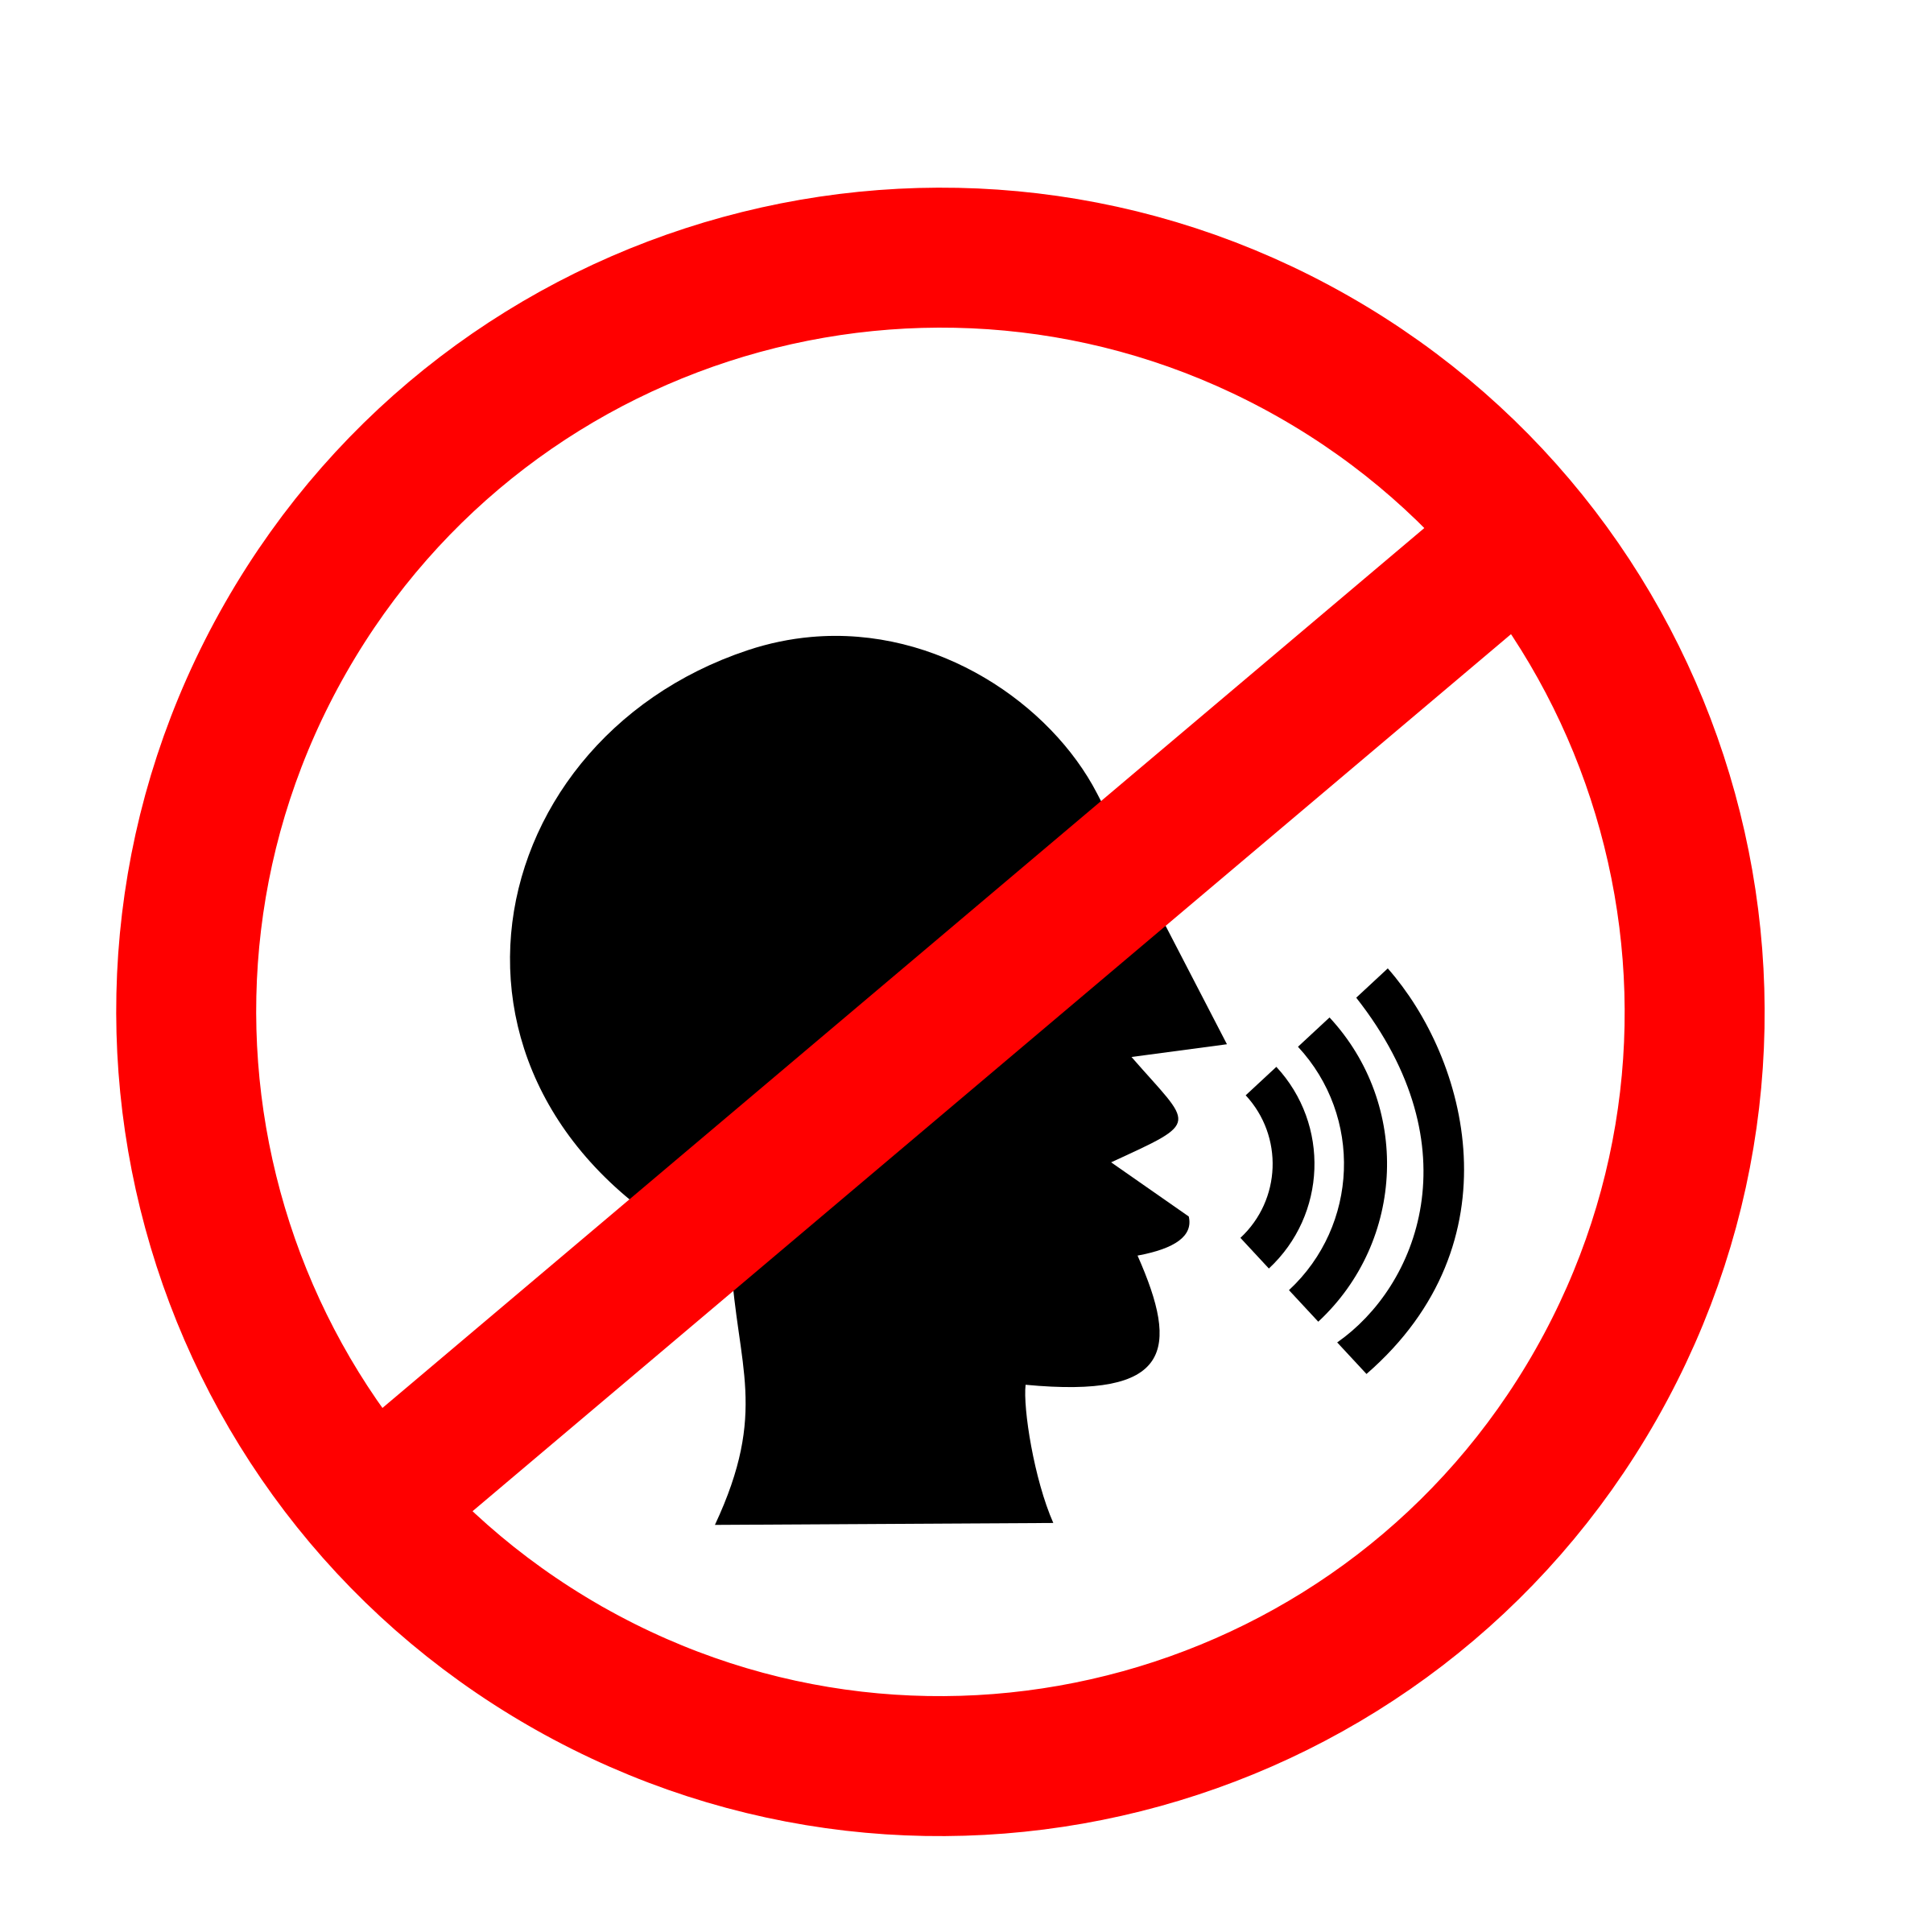 No Talking Sign By Rofrol